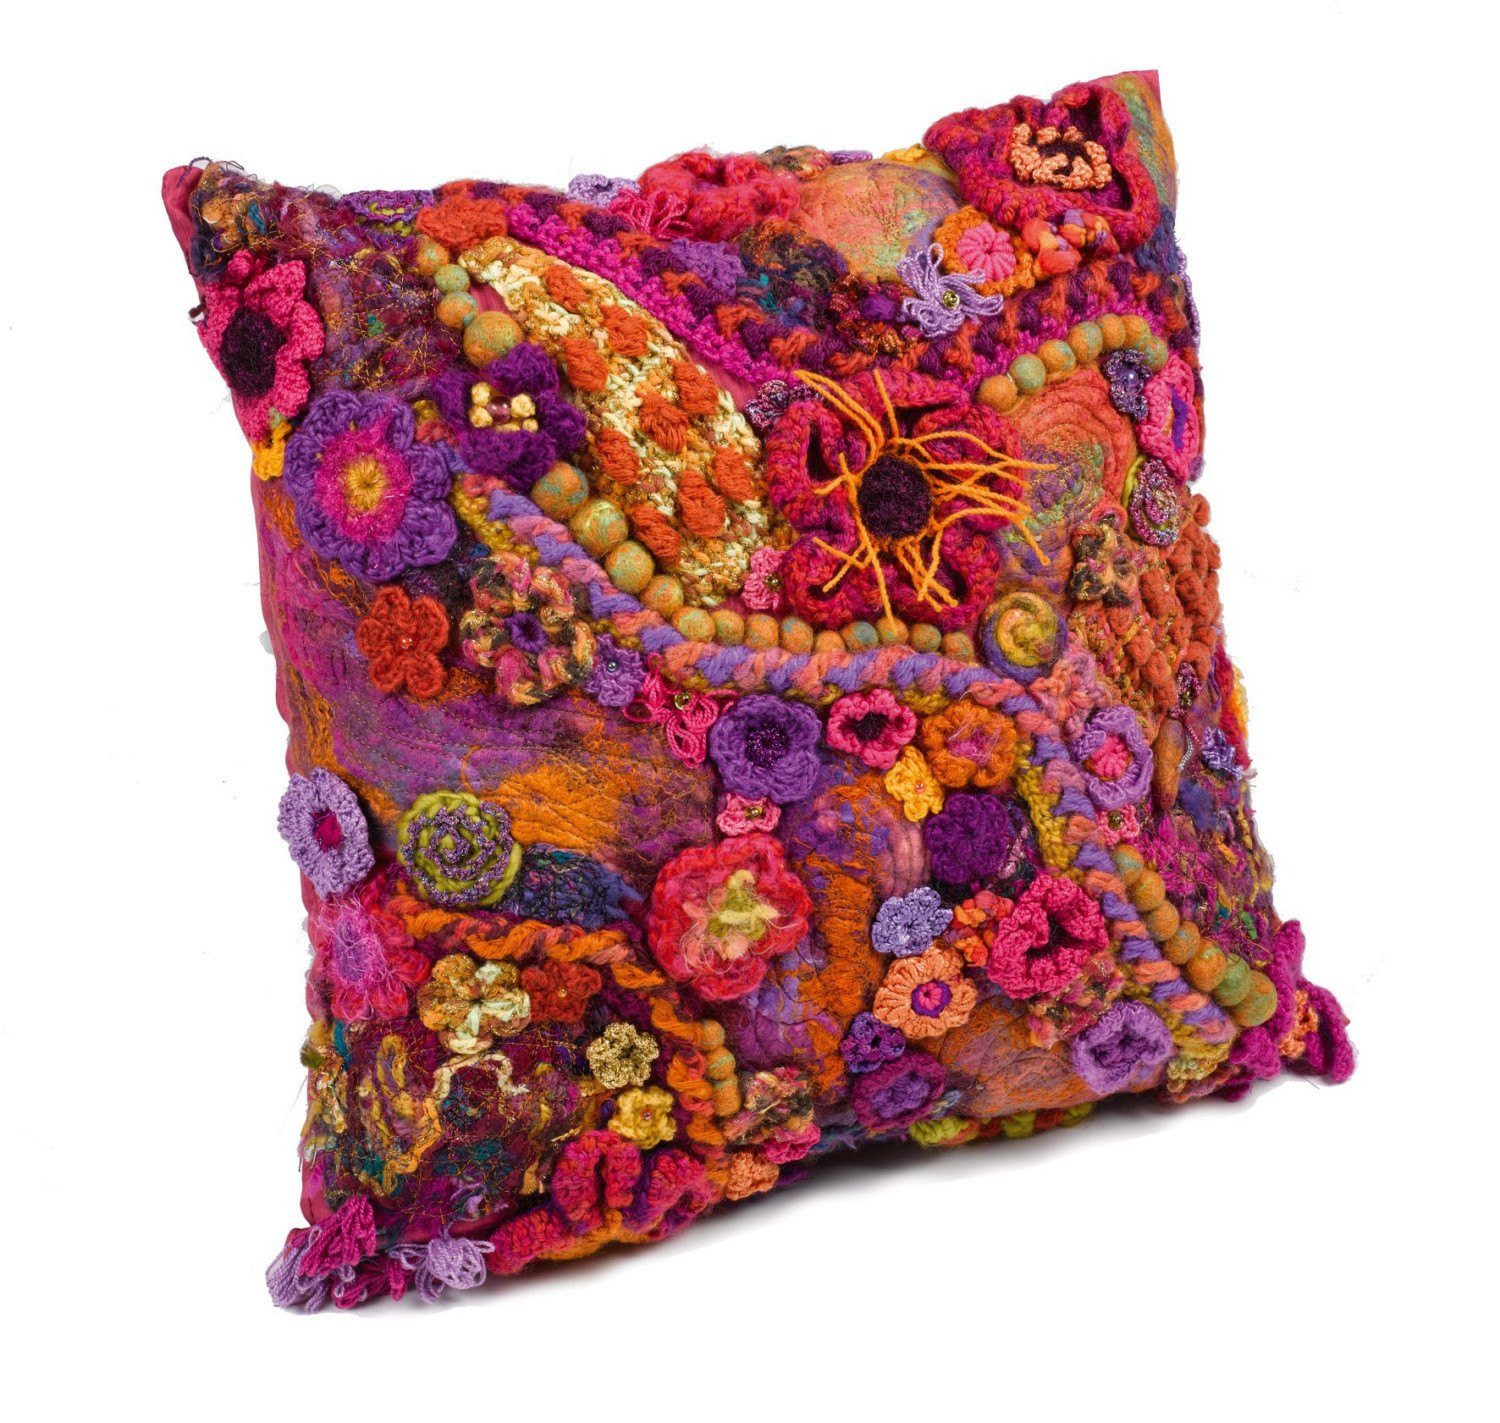 Crochet Pillow Cover Unique Cushion Cover Ooak Freeform Crochet Full Bloom Of Amazing 50 Pics Crochet Pillow Cover